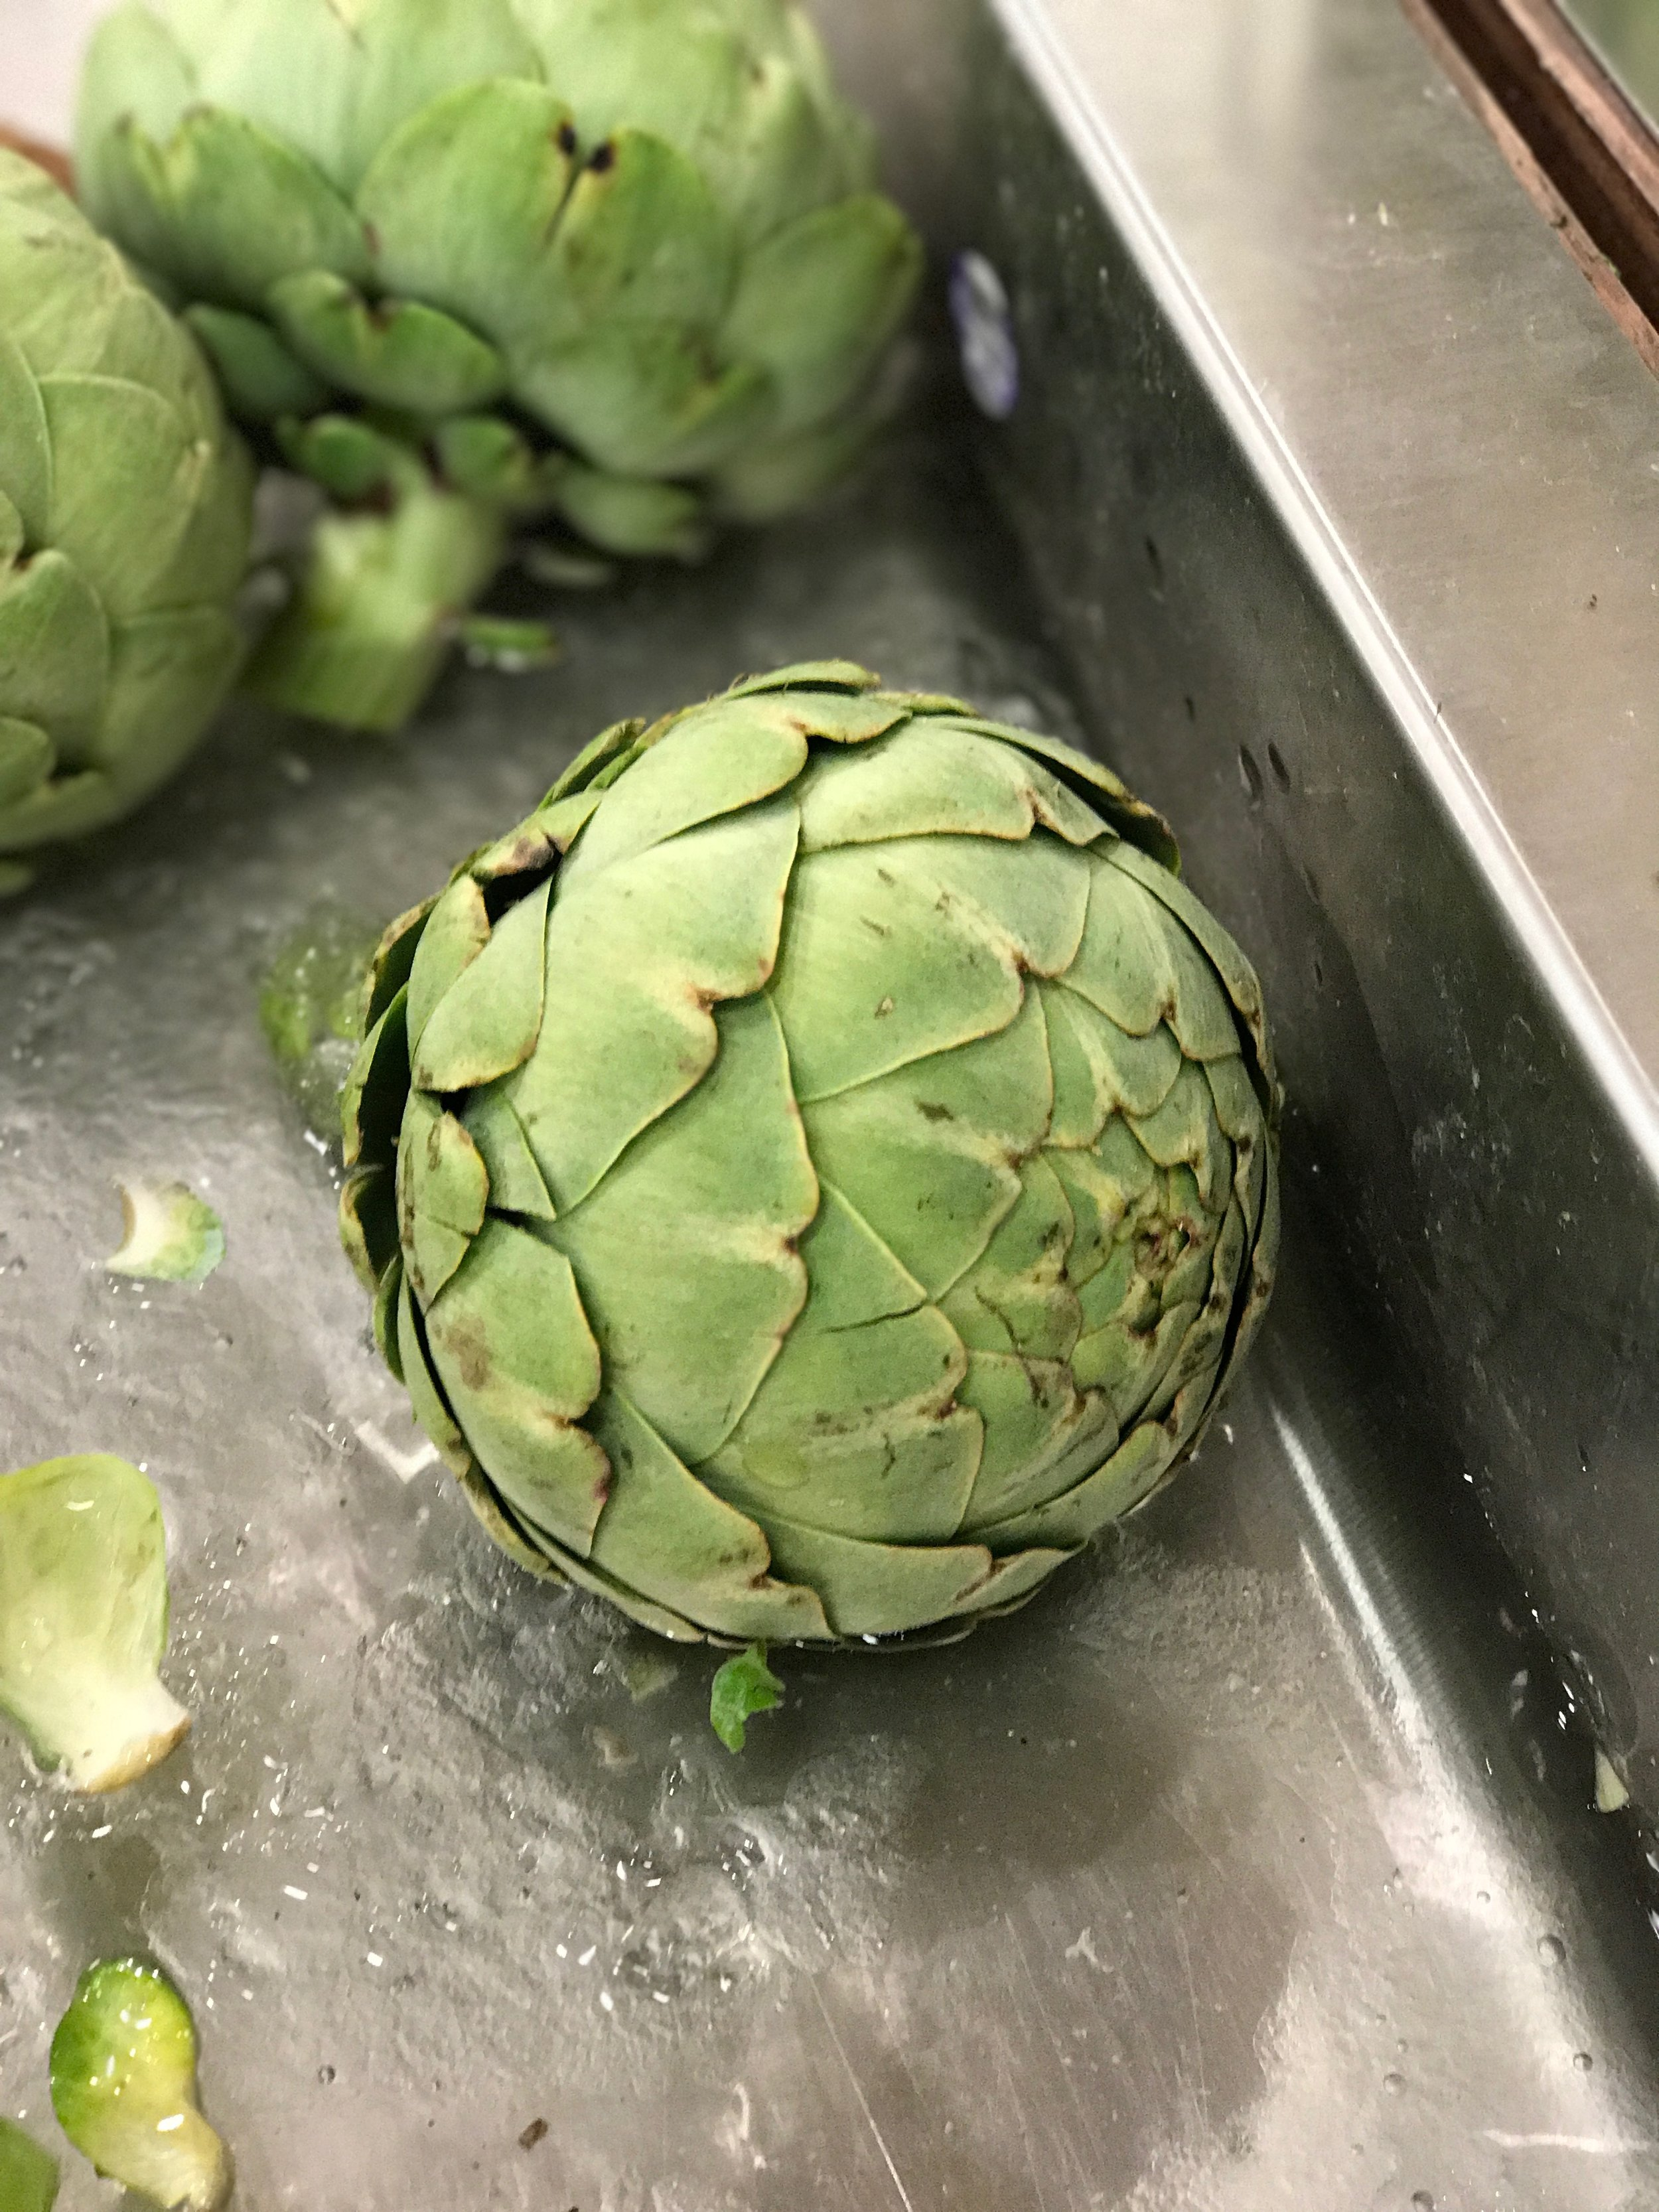 An artichoke at my local grocery store